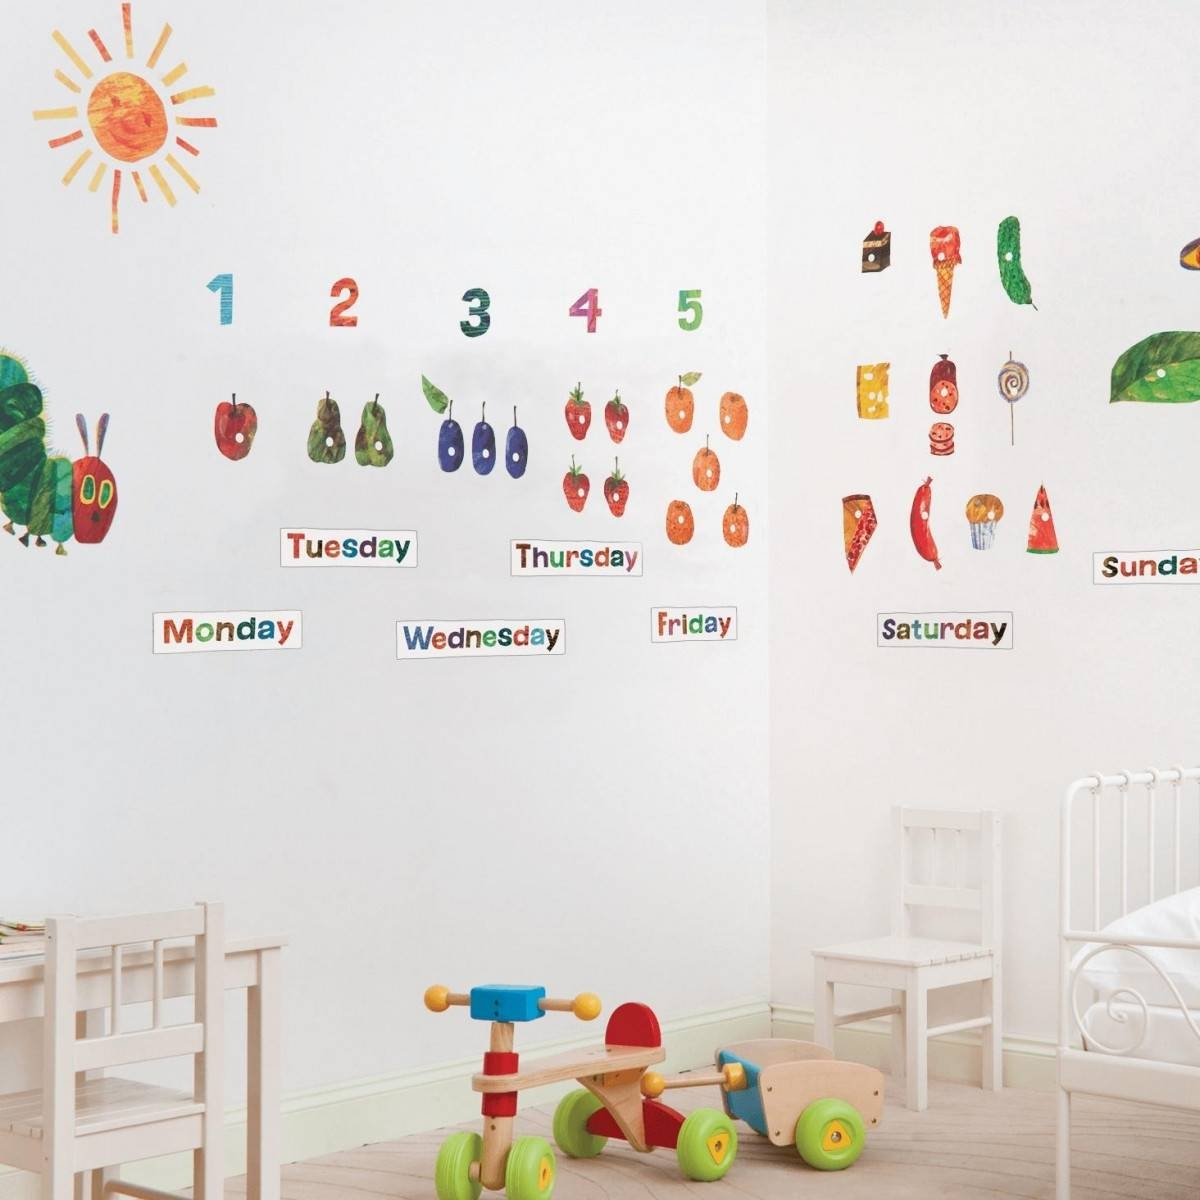 Buy The The Very Hungry Caterpillar 49 Room Decor Stickers From Throughout 2018 The Very Hungry Caterpillar Wall Art (View 16 of 25)